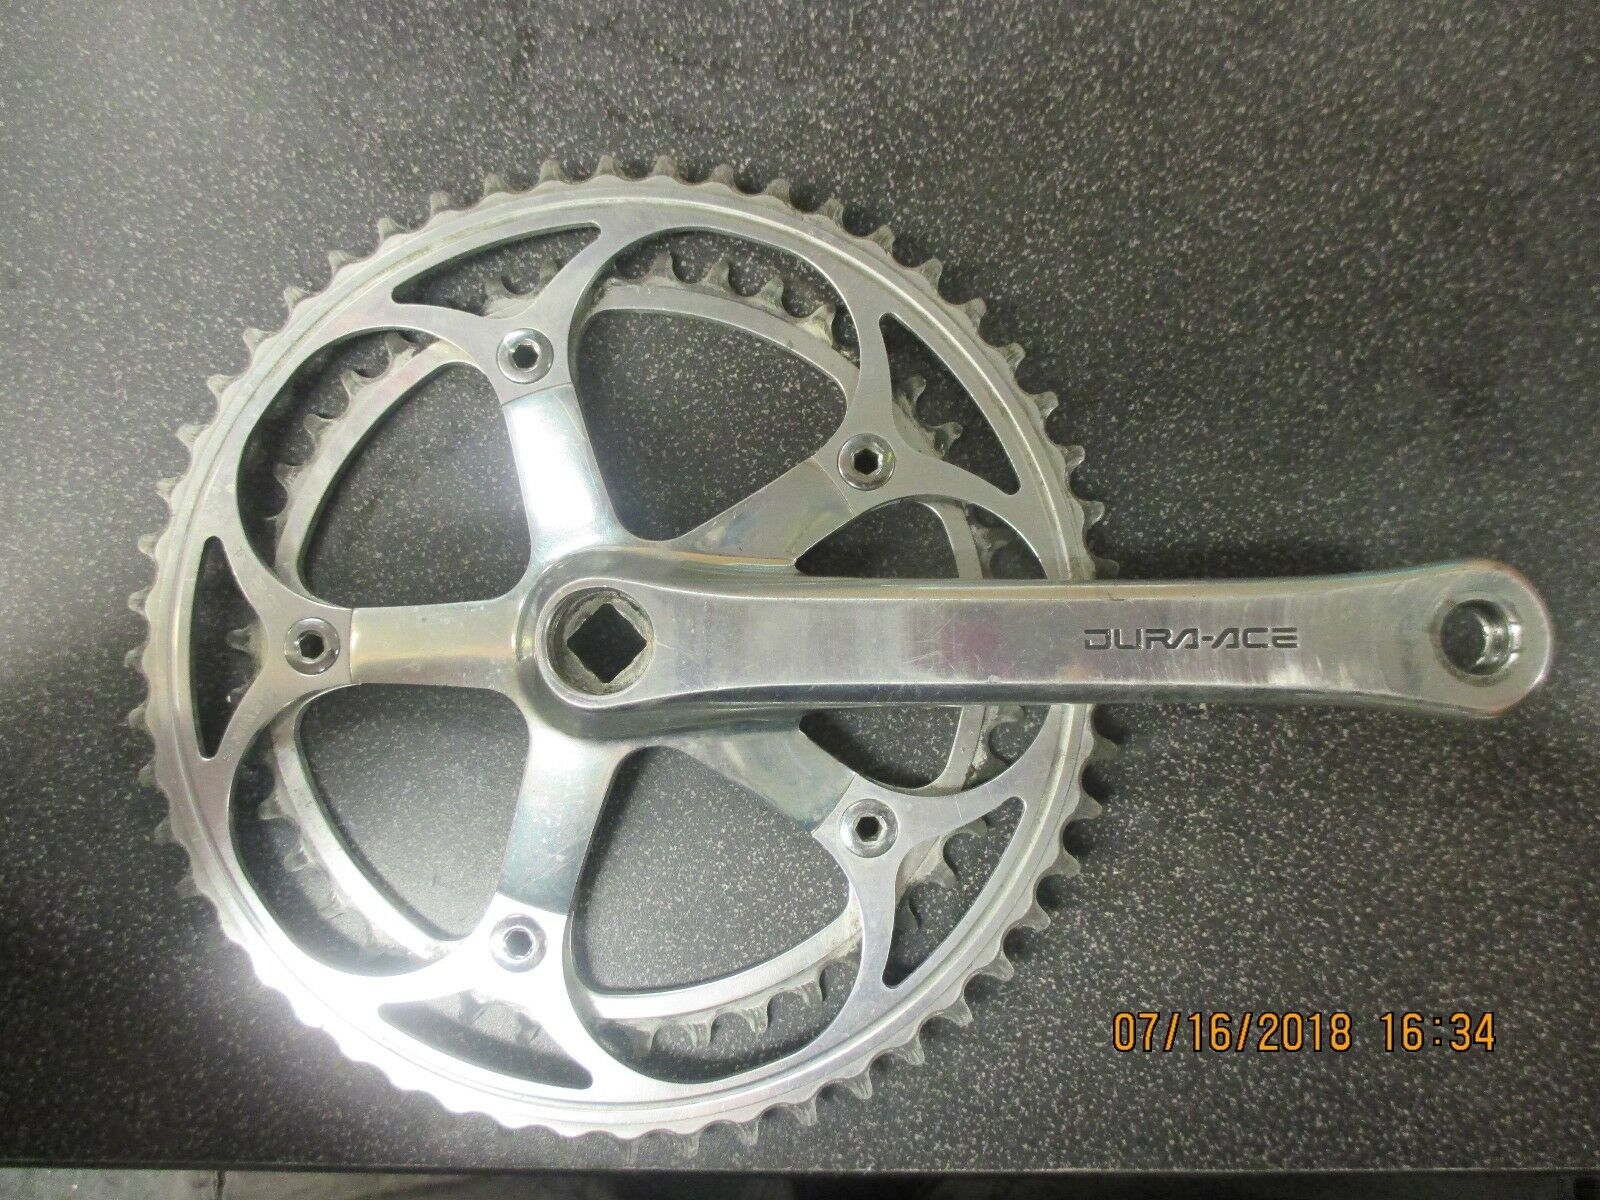 Vintage Shimano Dura Ace FC-7400 Righ crank arm 170 6242  VGC  online shopping and fashion store